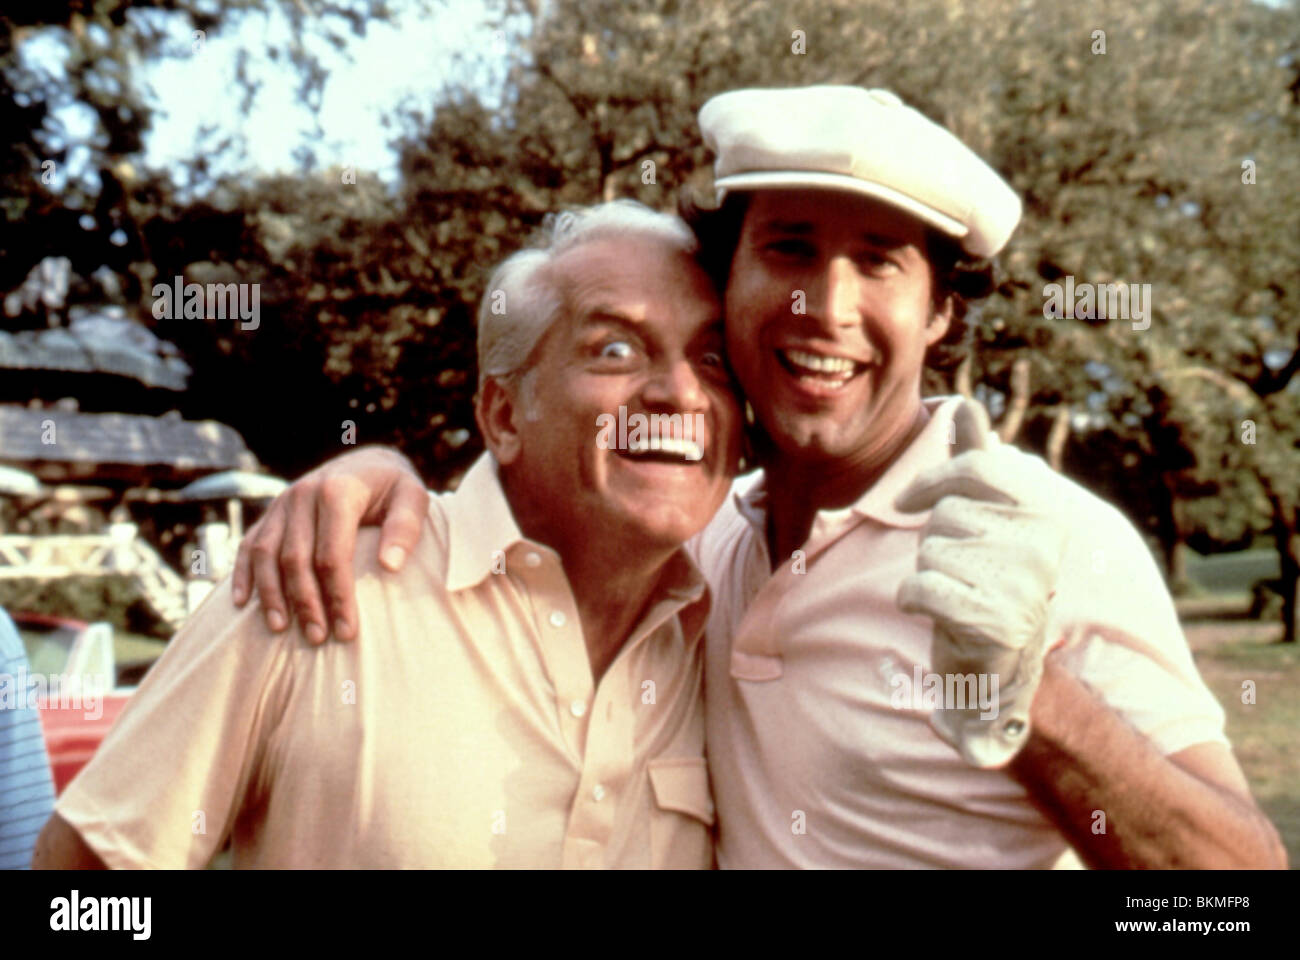 CADDYSHACK (1980) TED KNIGHT, CHEVY CHASE CDS 011 - Stock Image